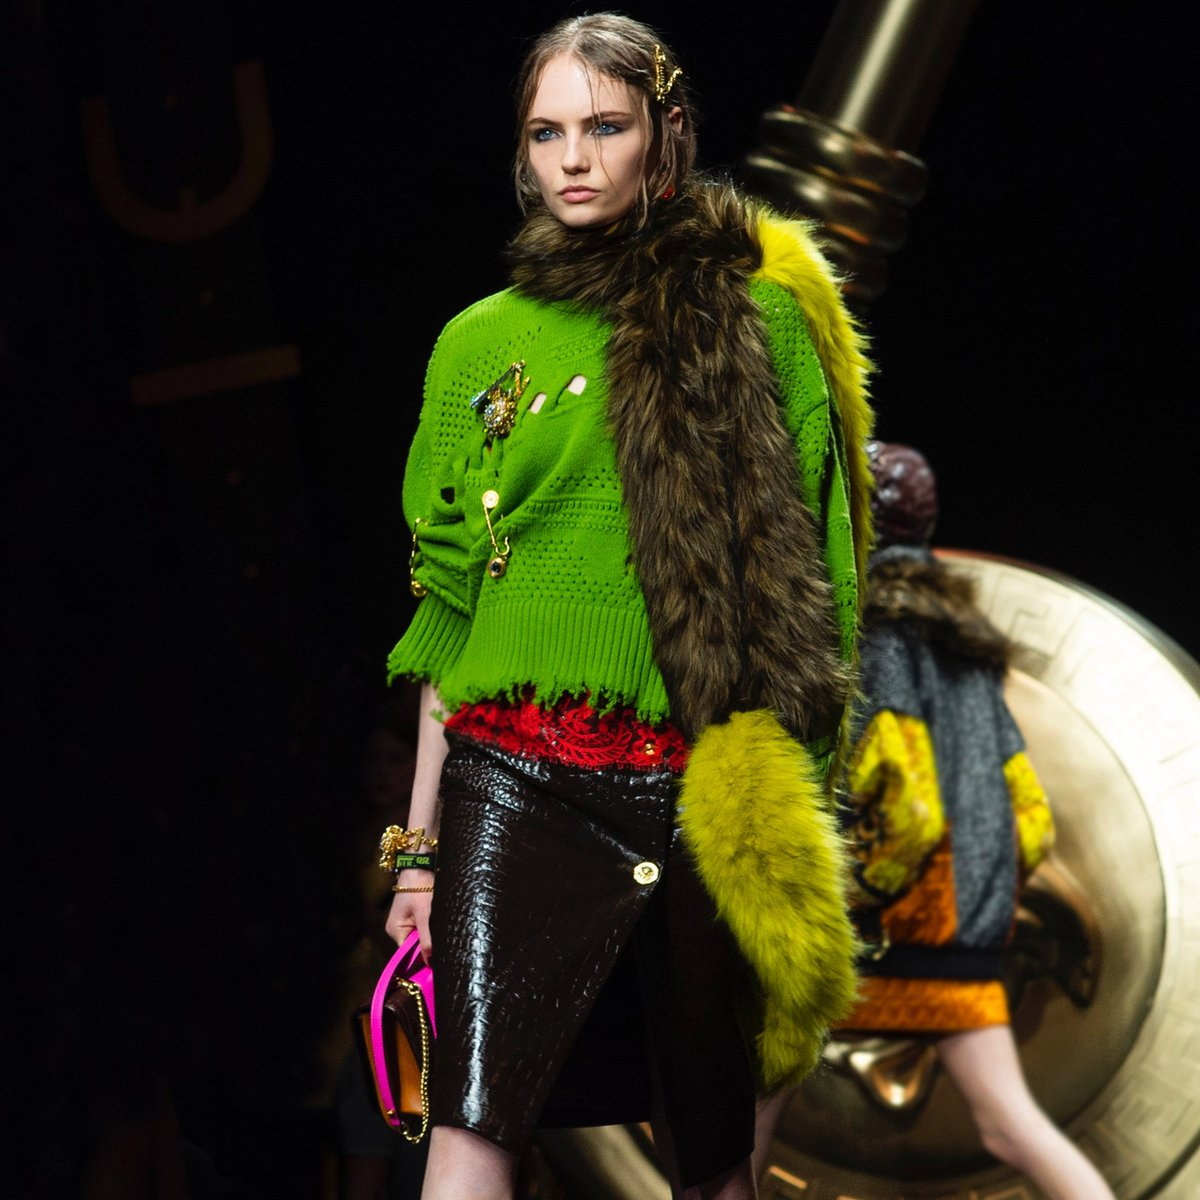 The dichotomy of luxury and grunge is present on the #VersaceFW19 runway: rich leathers and faux furs are paired with intentionally destroyed knits adorned with signature Safety Pins. #MFW  Watch the show:  https://t.co/drIKwcAARG